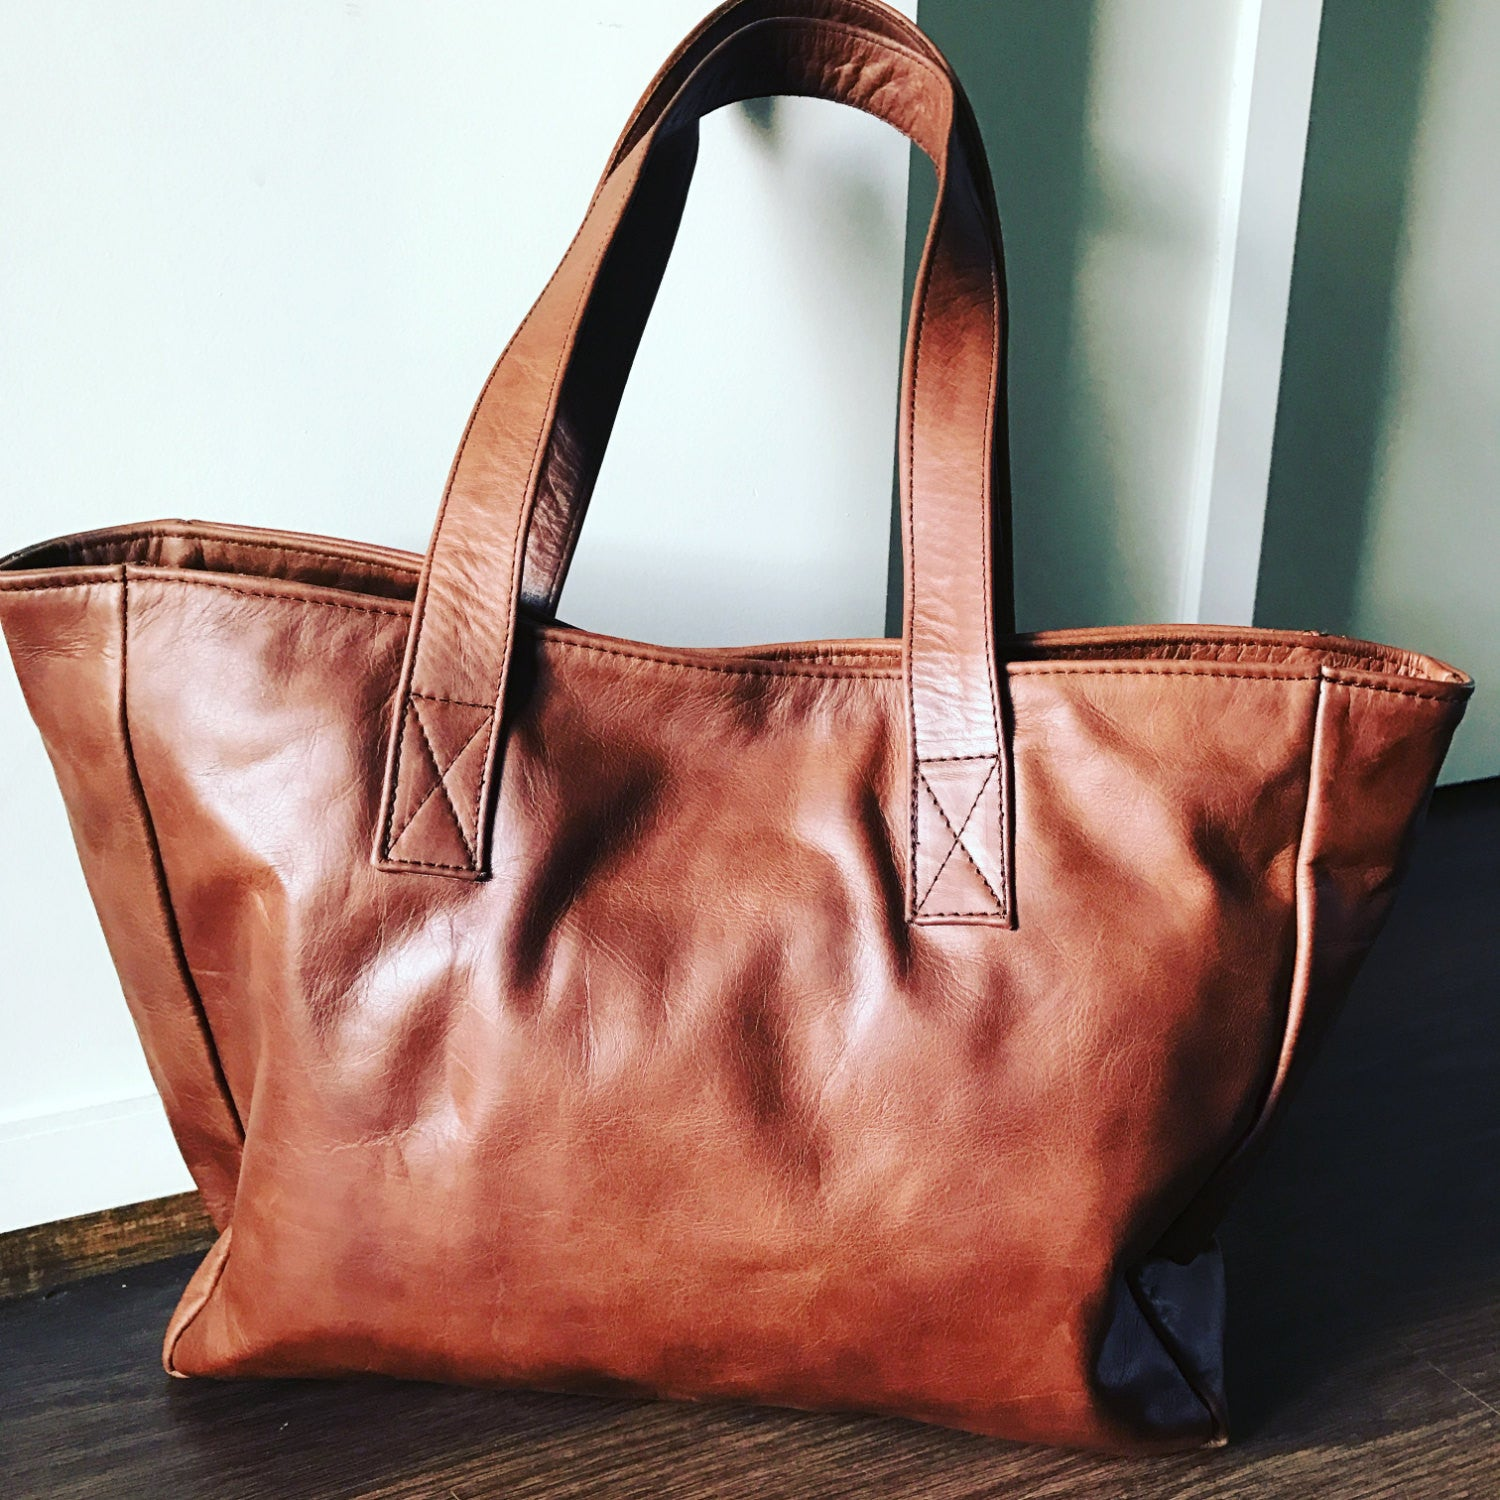 The Total Tote-Leather Tote Bag.Beautifully Handmade from genuine leather.